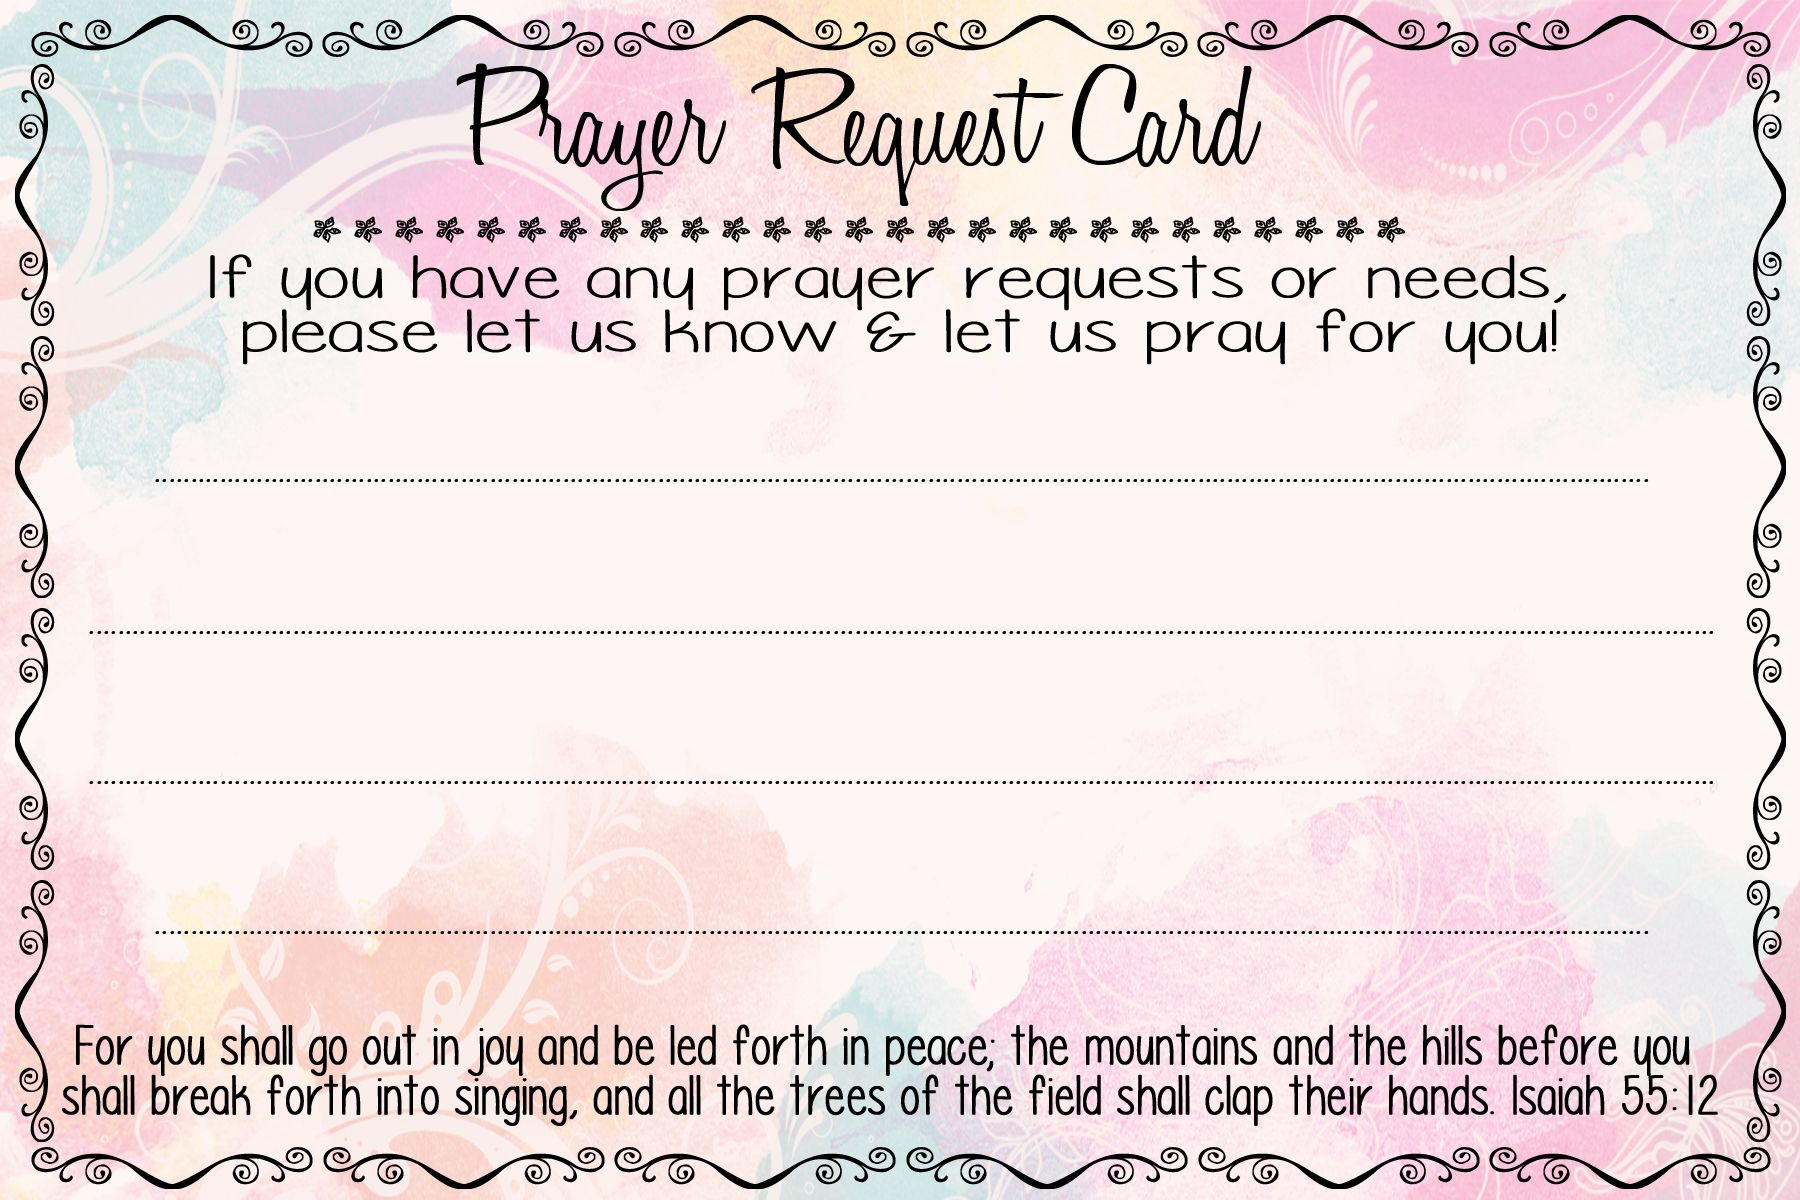 Prayer Request Cards | A fierce flourishing | Prayer